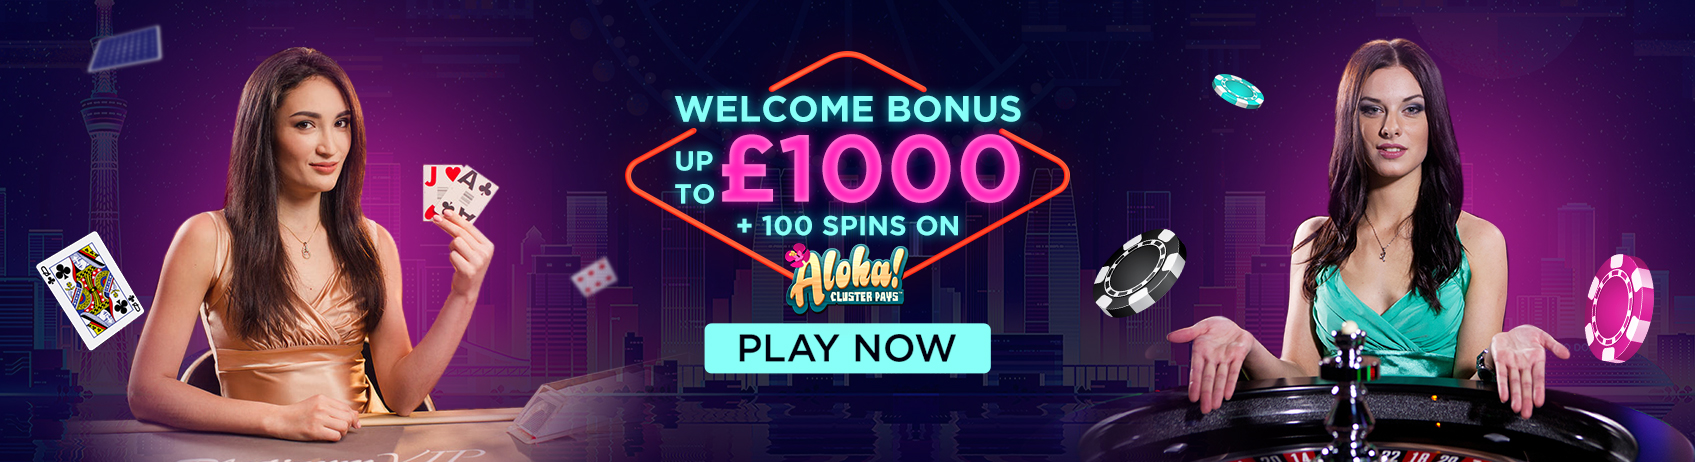 Casino Mobile Offer